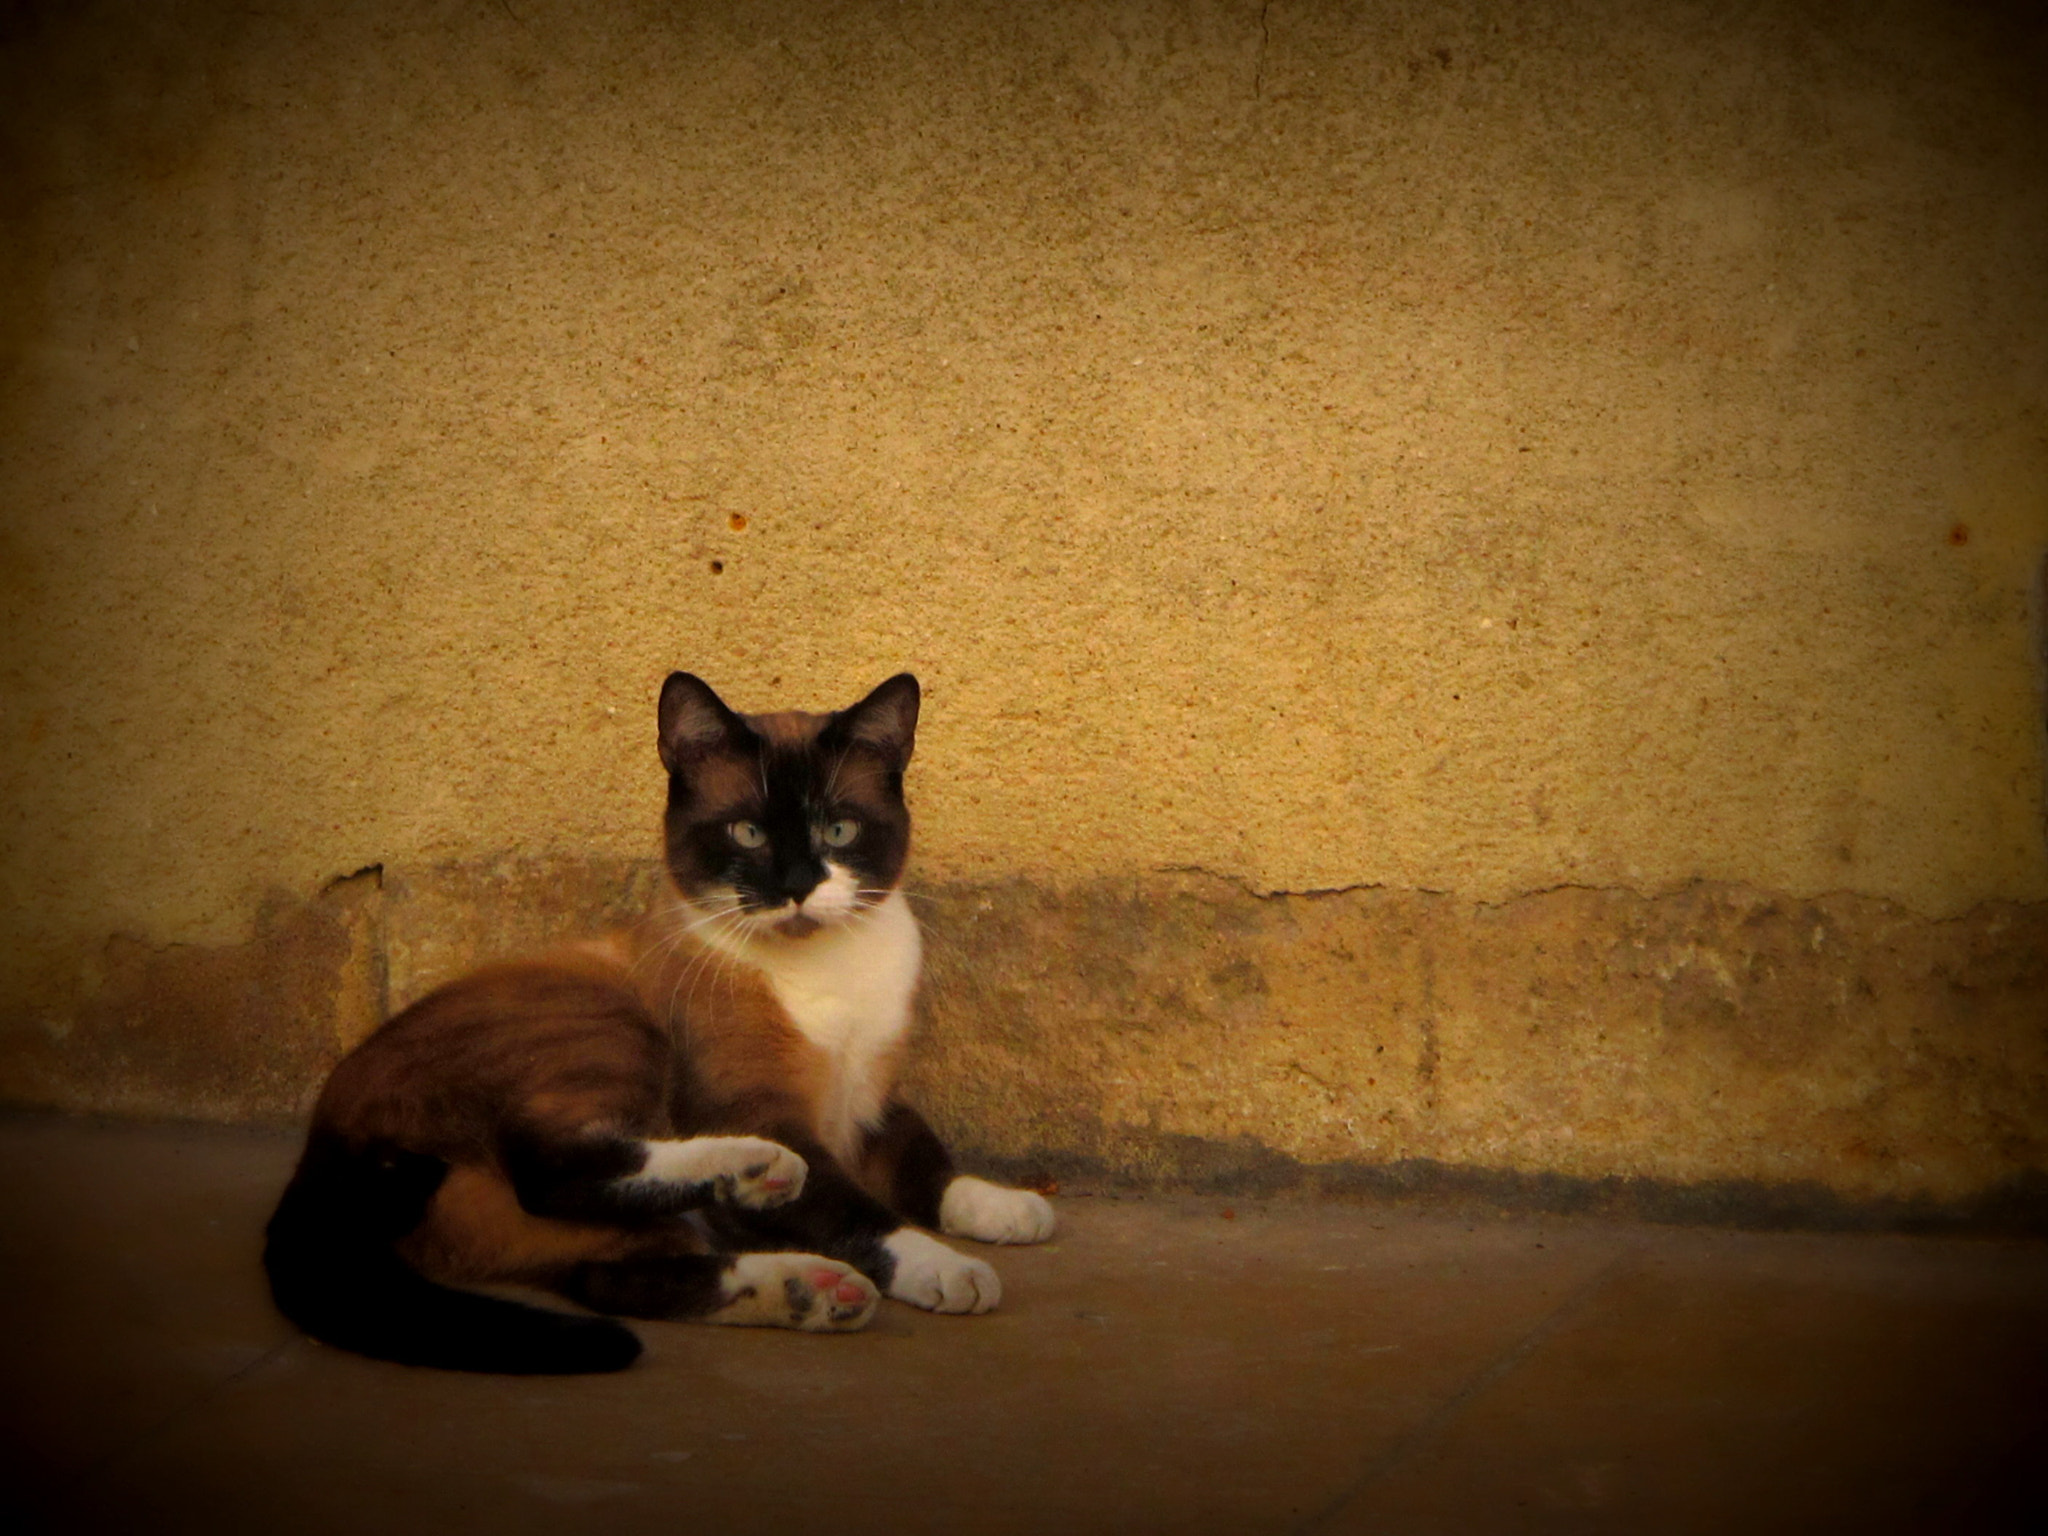 Photograph Umbrian cat II by Ceesjan Frank on 500px